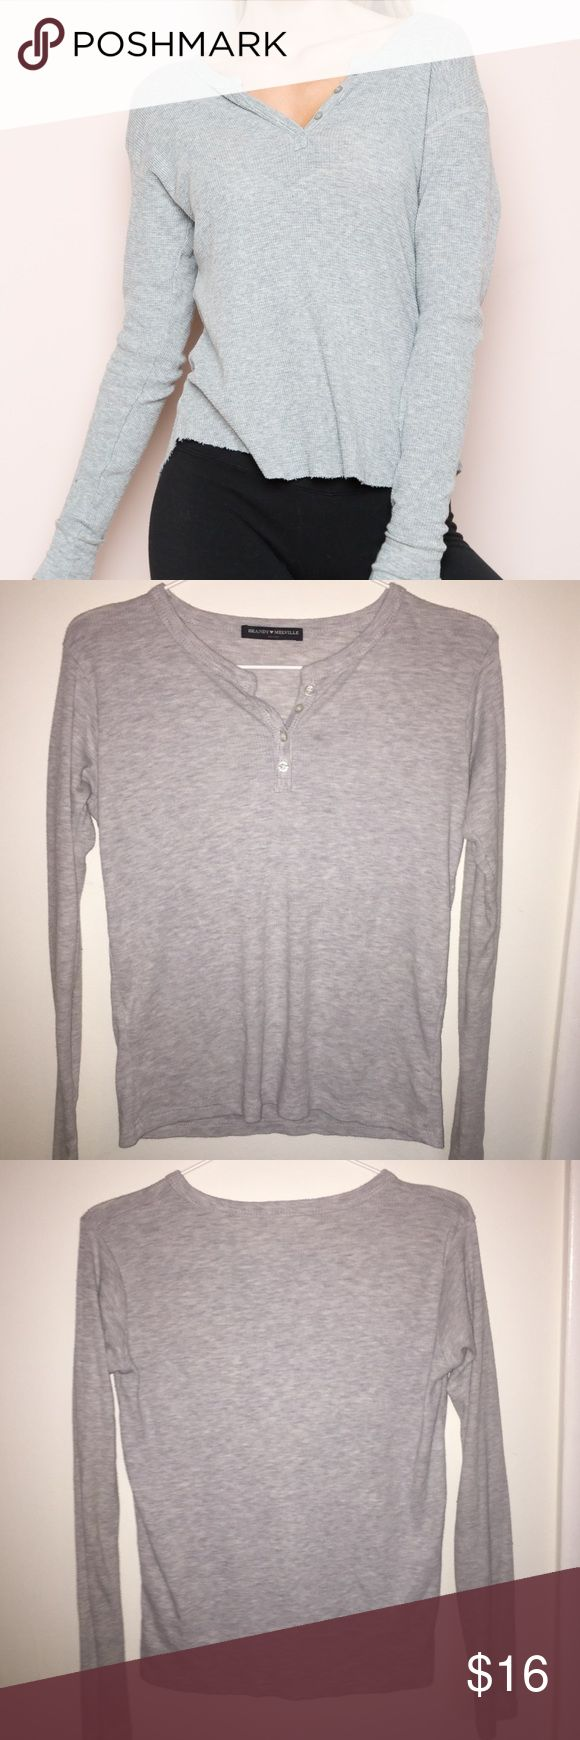 BRANDY MEL (CLEAR OUT) - Grey Henley Top Worn once, no signs of wear! Buttons are in perfect condition. Soft material with light grey color. No pilling. No PayPal or trading! Brandy Melville Tops Tees - Long Sleeve